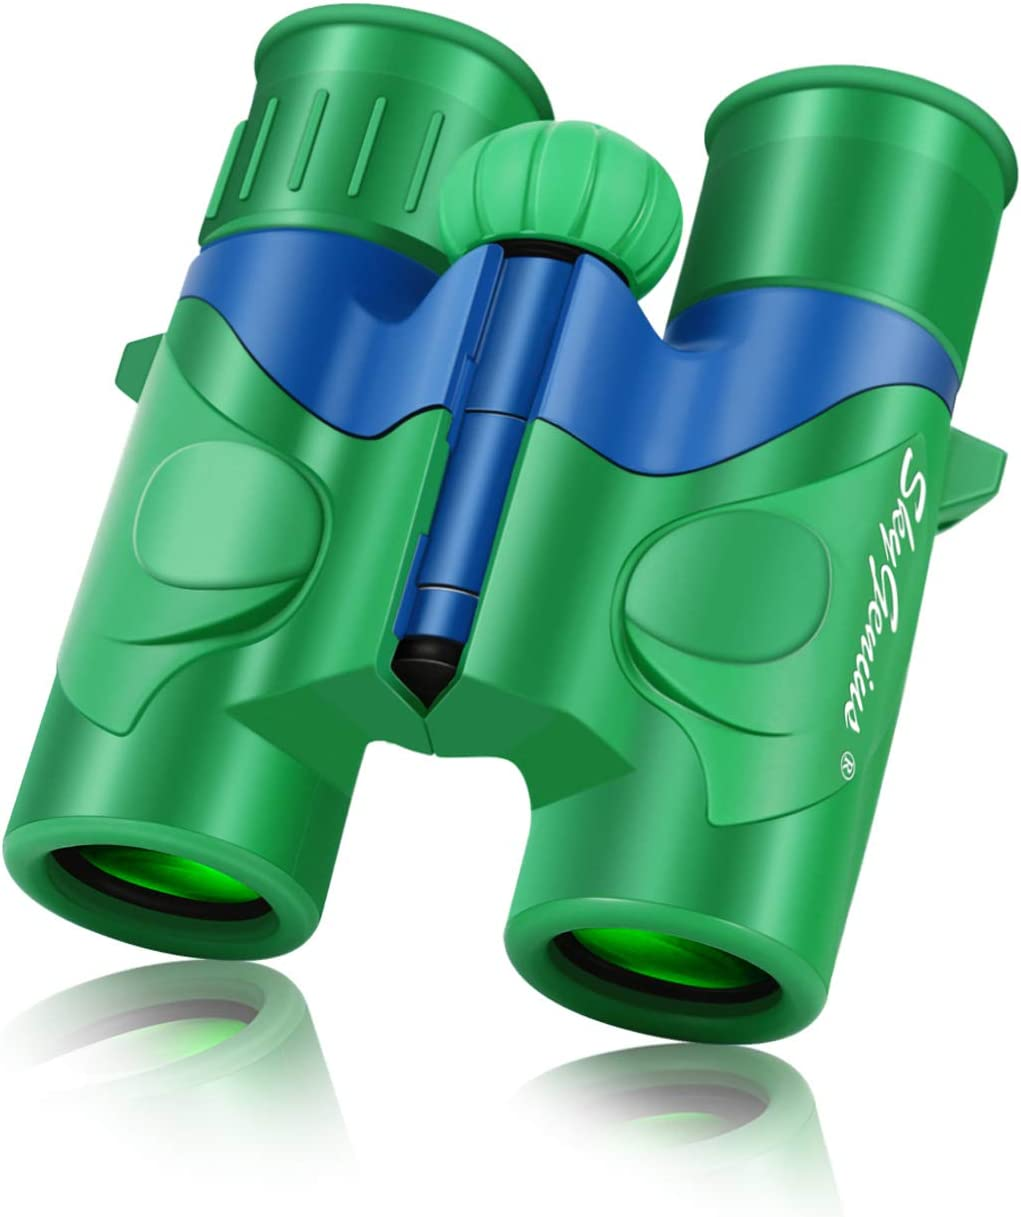 SkyGenius Binoculars for Kids, Mini Binoculars Boys for Bird Watching, Real Optics High Resolution Small Binoculars for Travel Exploring Nature Hiking, for 3-12 Years Old - Green